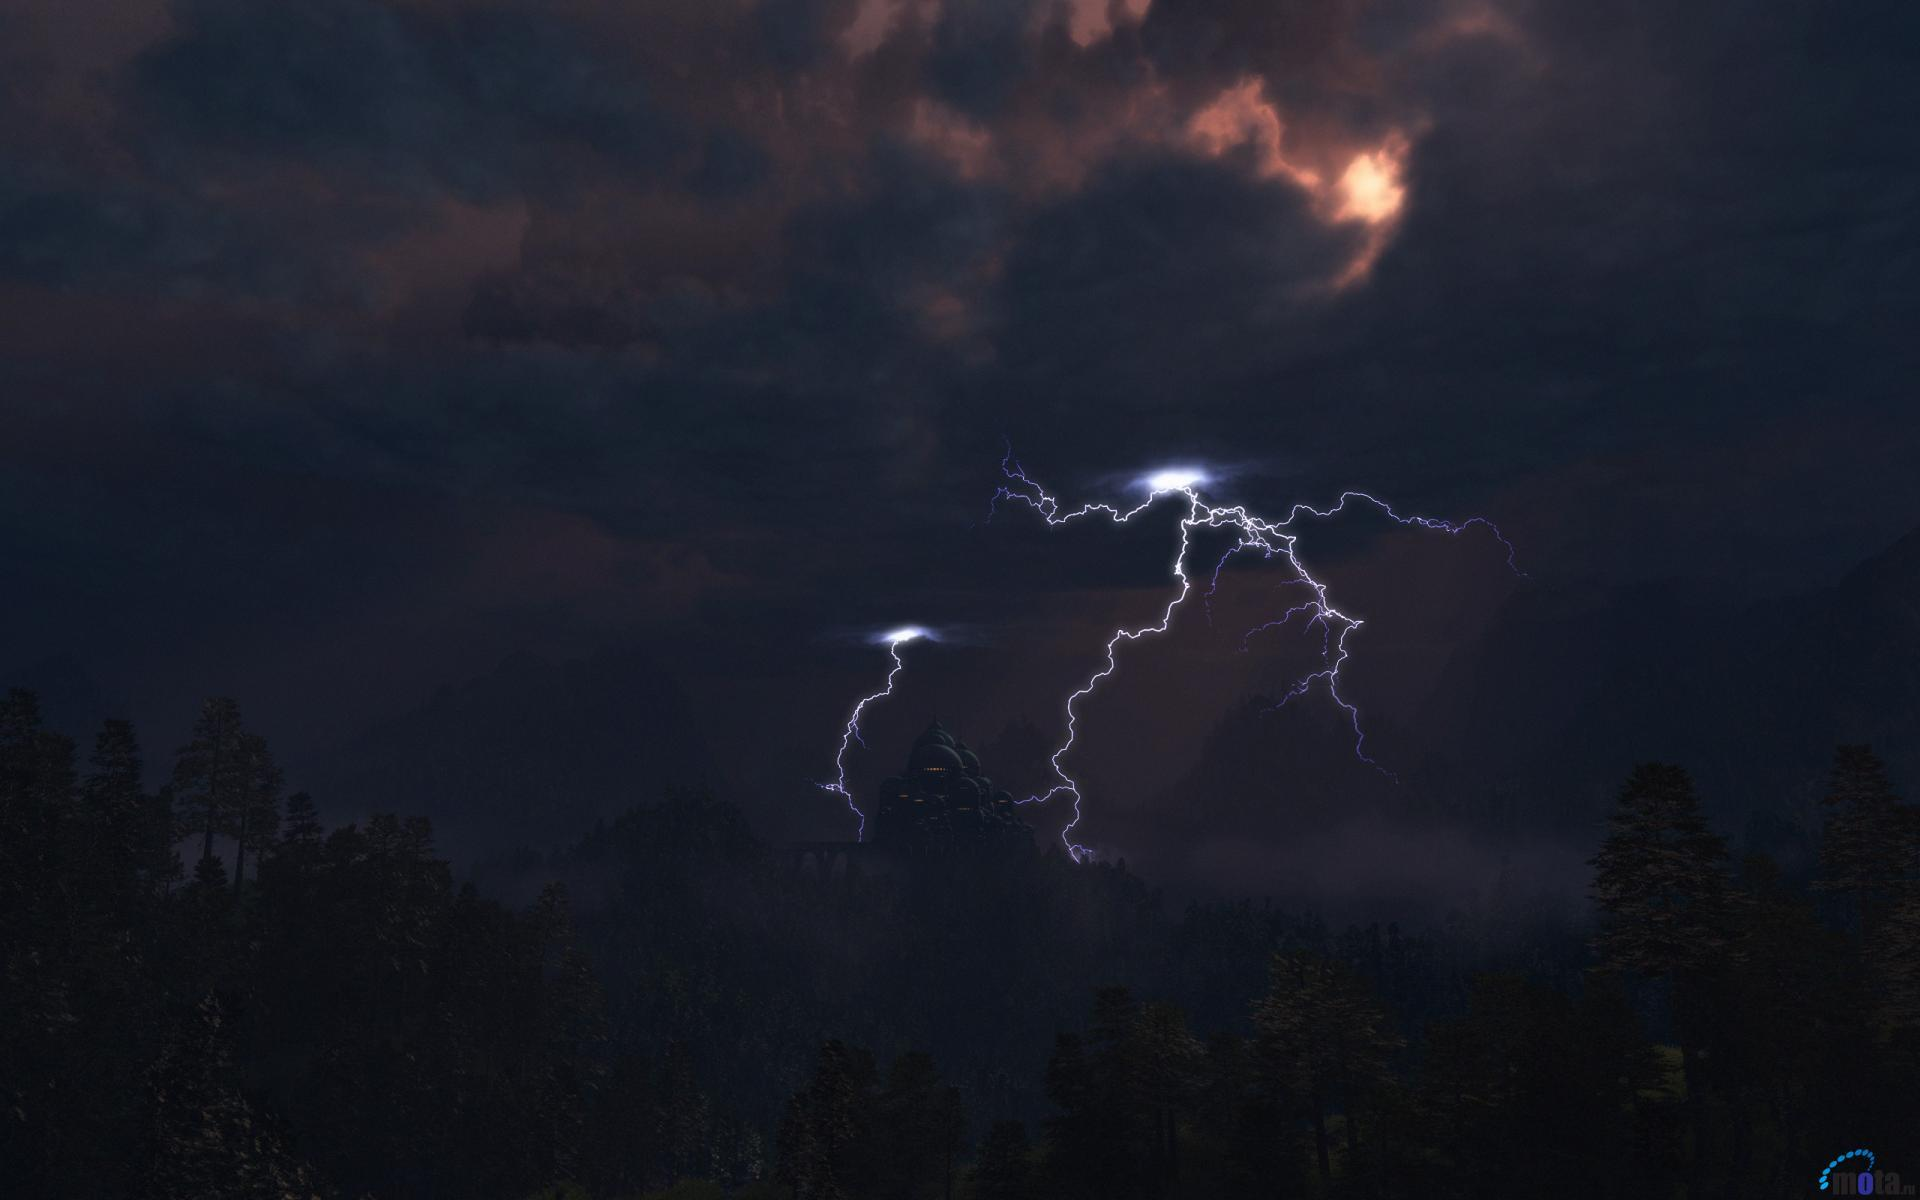 Thunderstorms Wallpapers - Wallpaper Cave